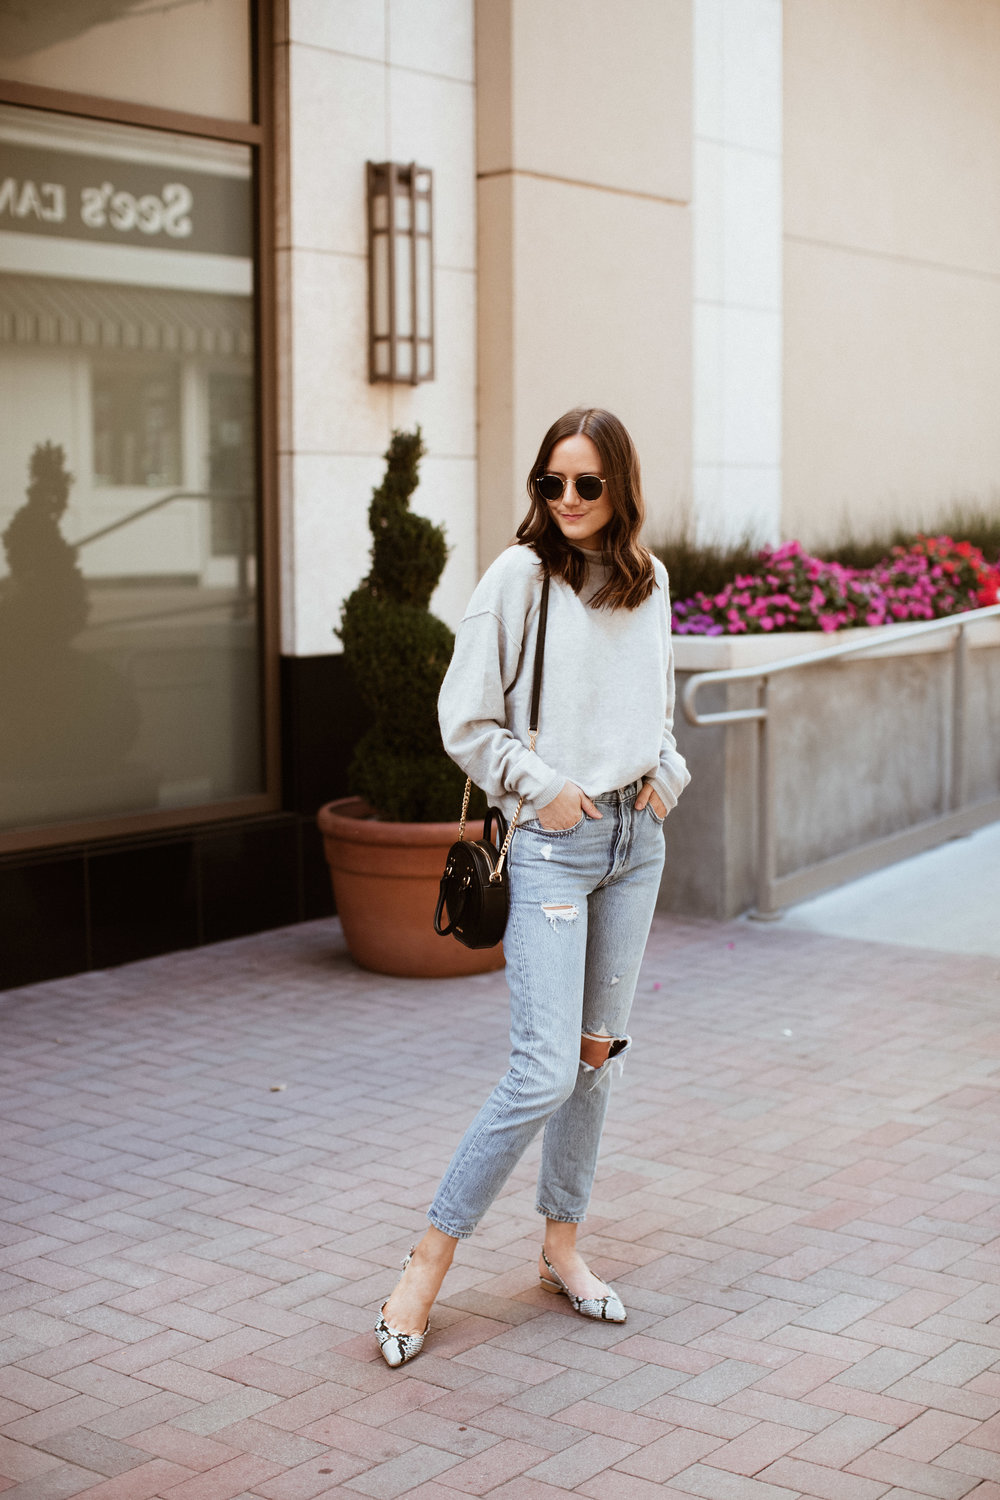 Shop the Look Below.  Free People Sweater  |  Levi's Jeans  |  Shopbop Flats  |  Rebecca Minkoff Bag  |  Ray-Ban Sunglasses